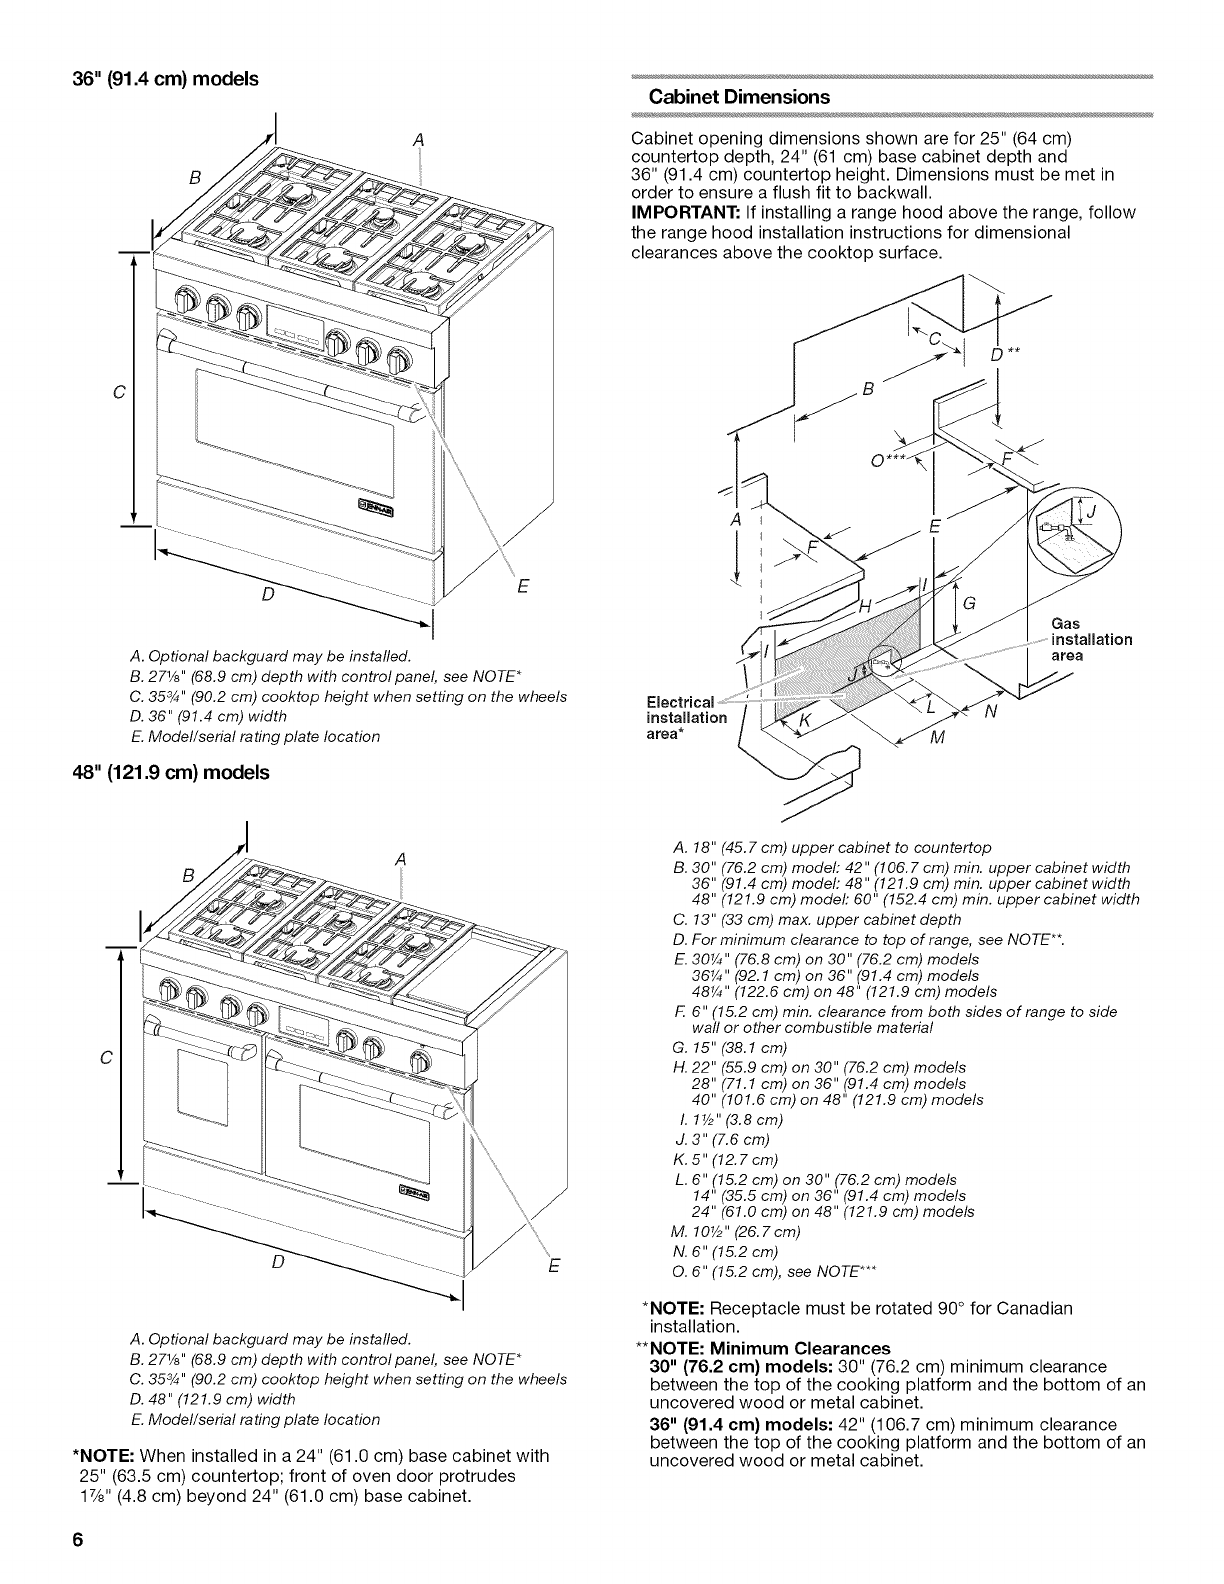 Jenn Air Jdrp536wp00 User Manual Dual Fuel Range Manuals And Guides Stove Top Wiring Diagram 36 914 Cm Models